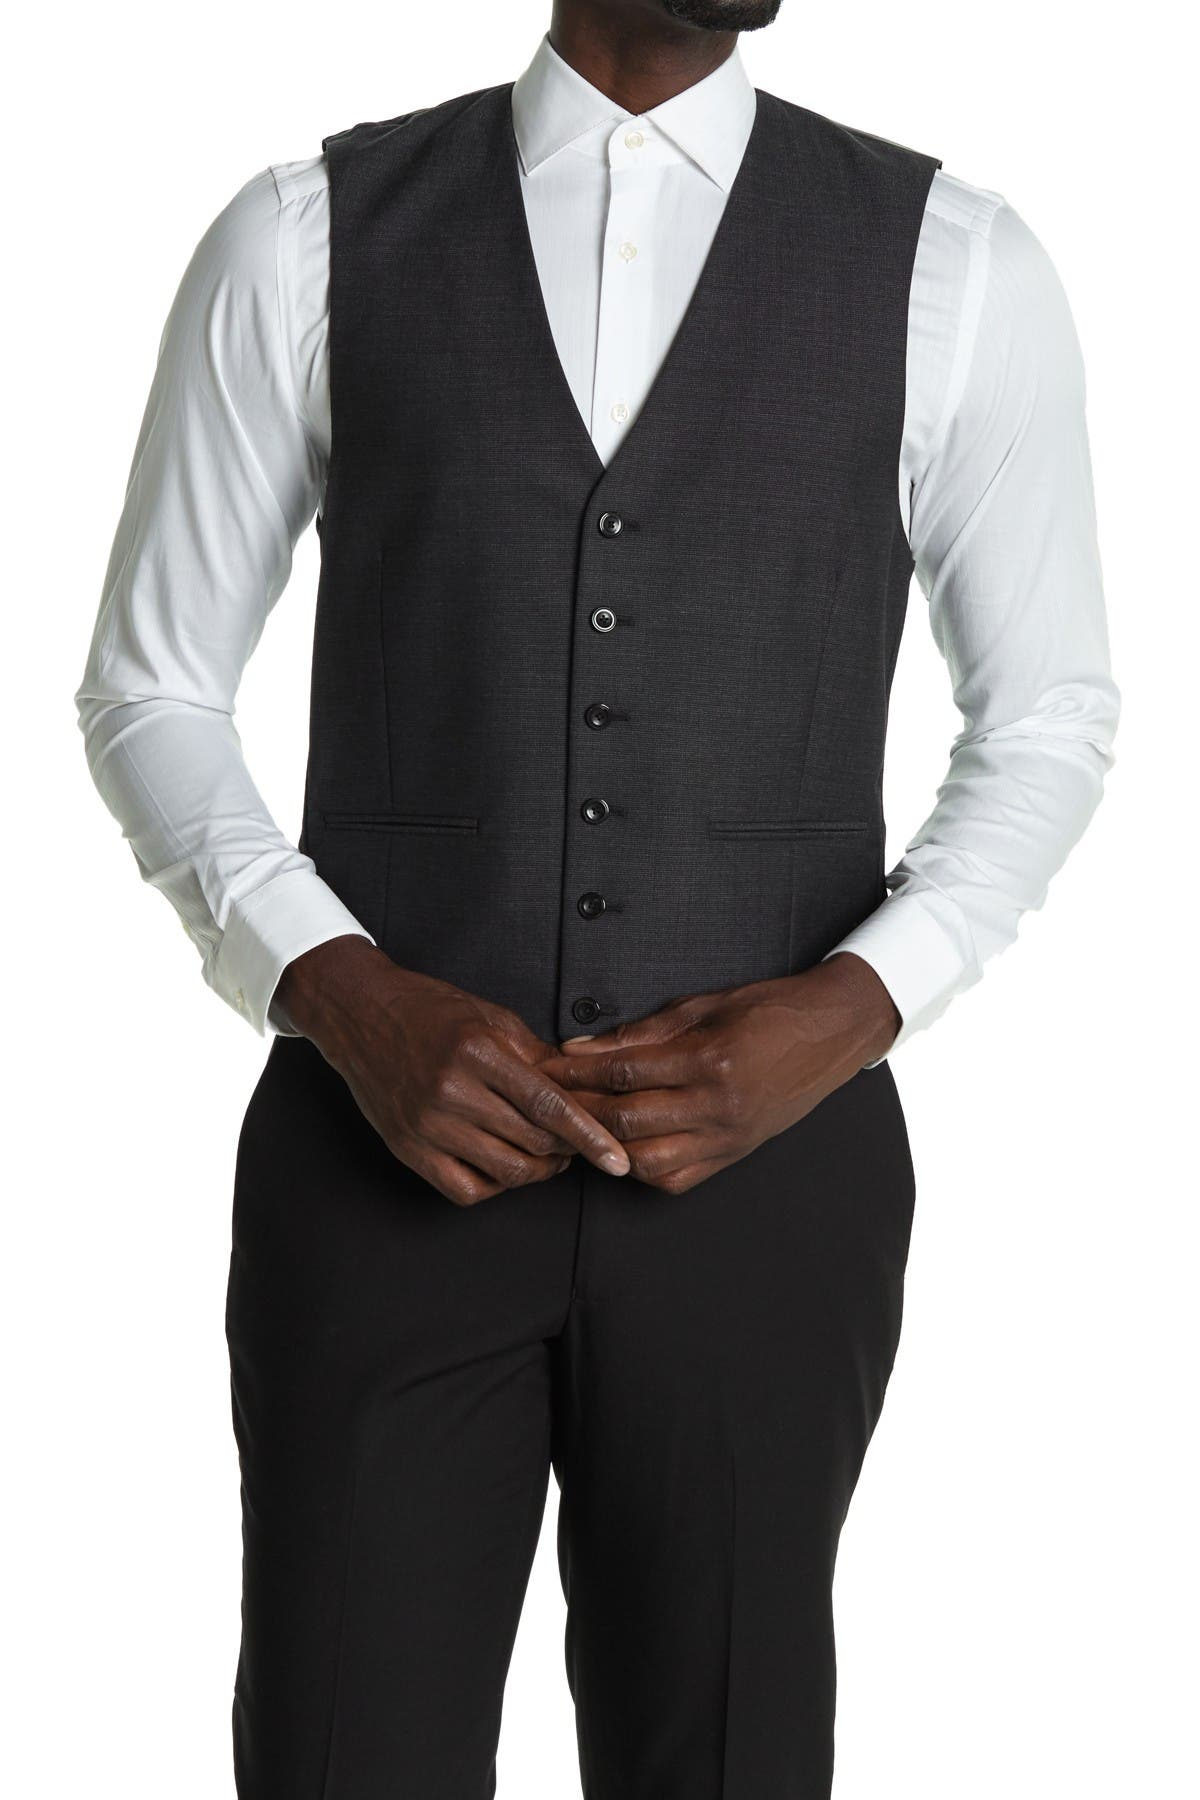 Image of REISS Warlord Modern Fit Waistcoat Vest